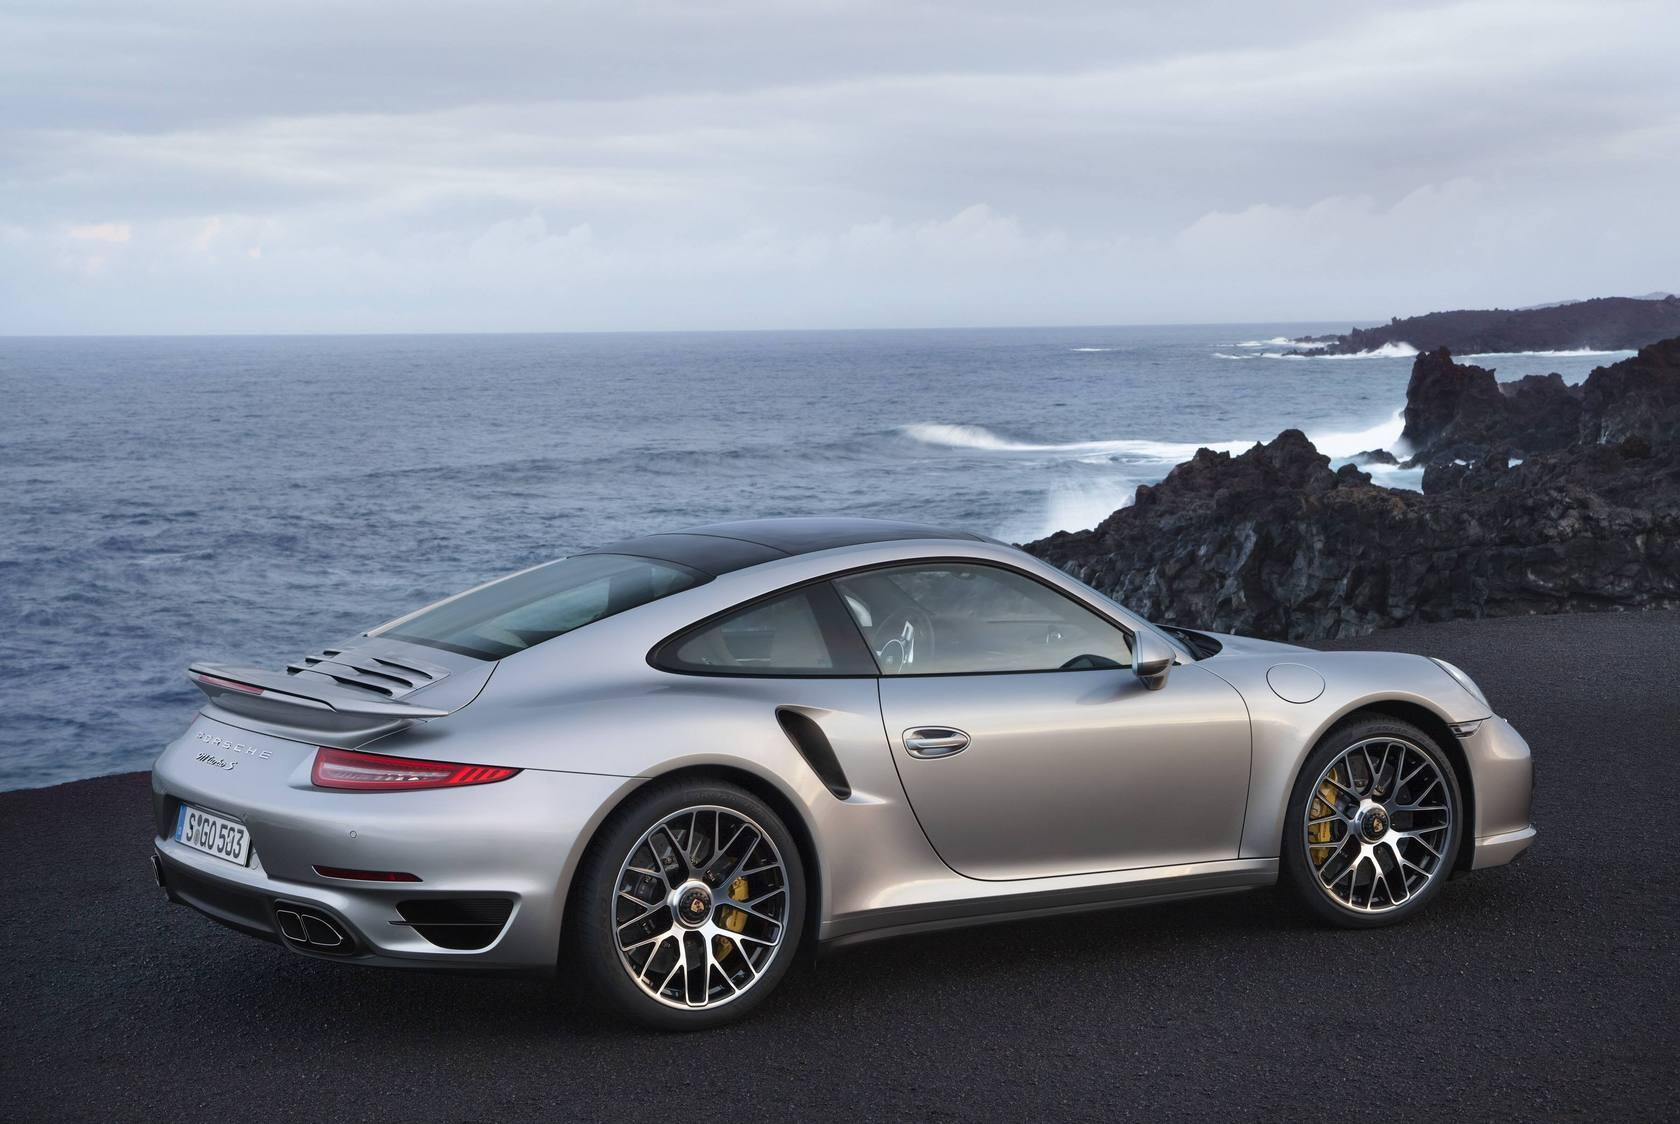 Nuevos Porsche 911 Turbo y 911 Turbo S